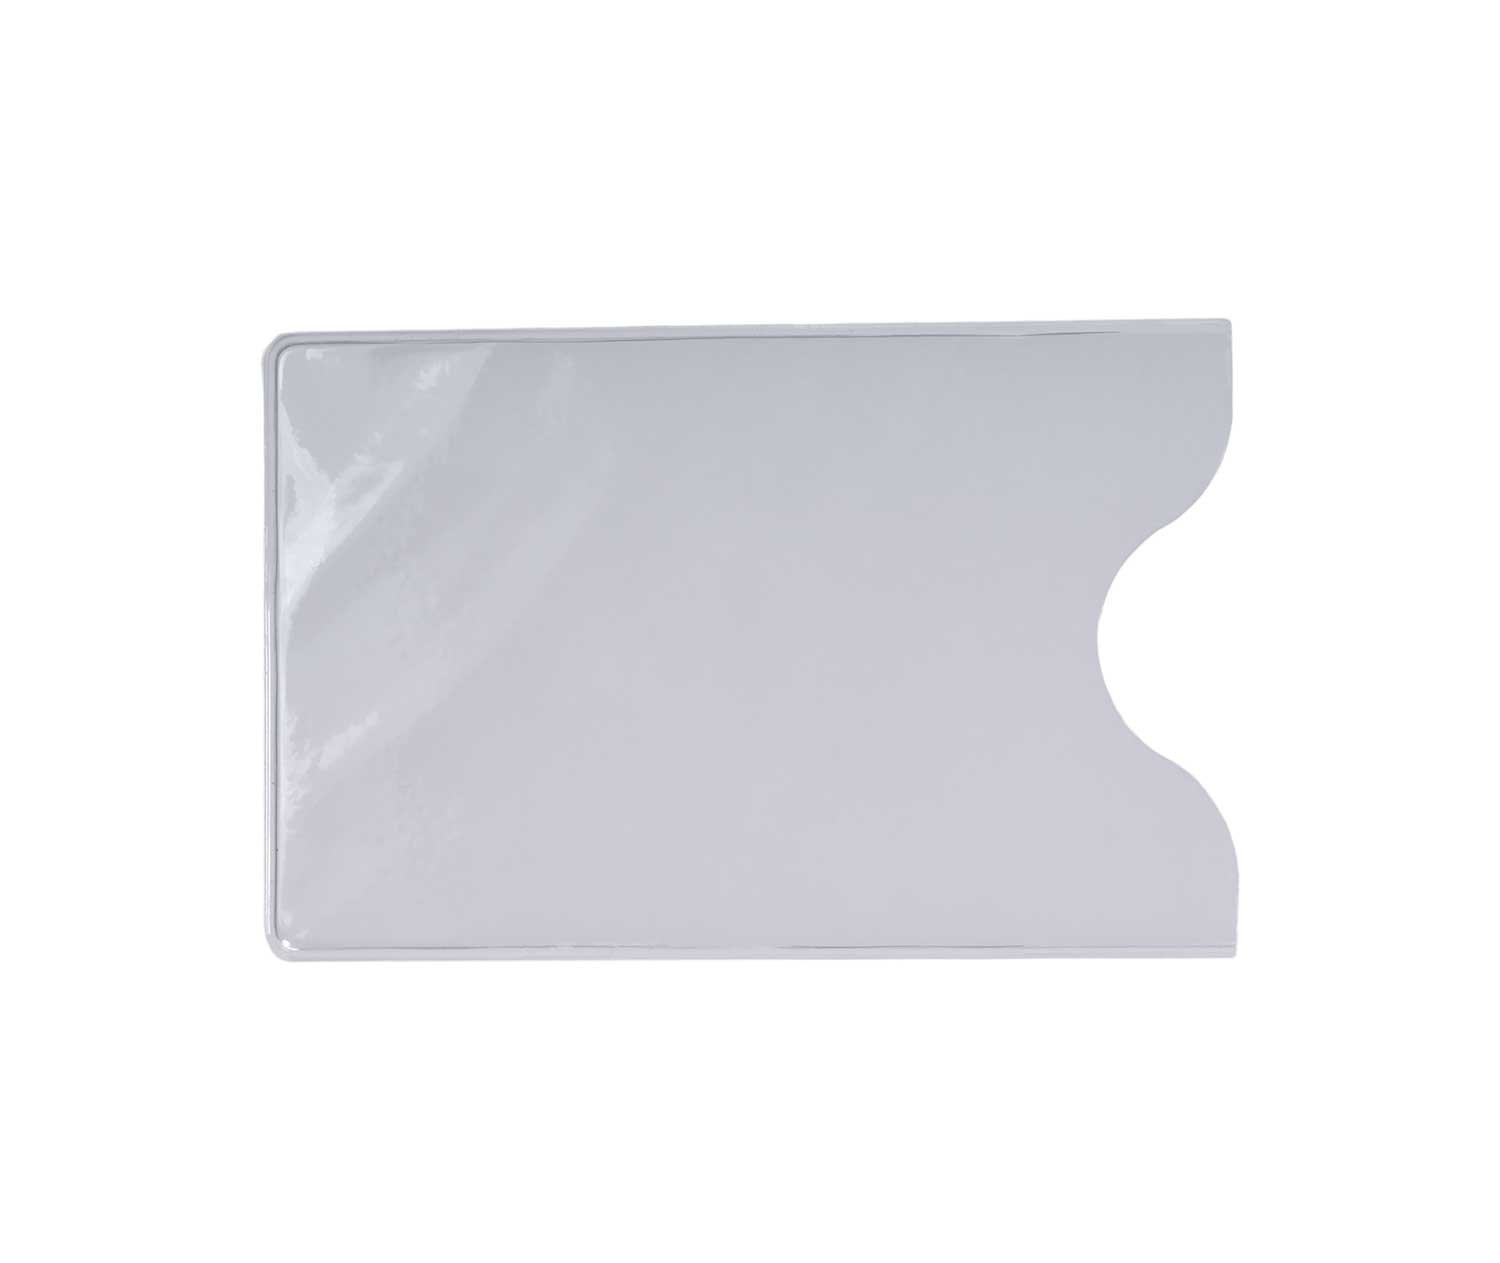 Amazon.com : Medicare Credit Card Protector Sleeve Clear 6 Mil (24 ...